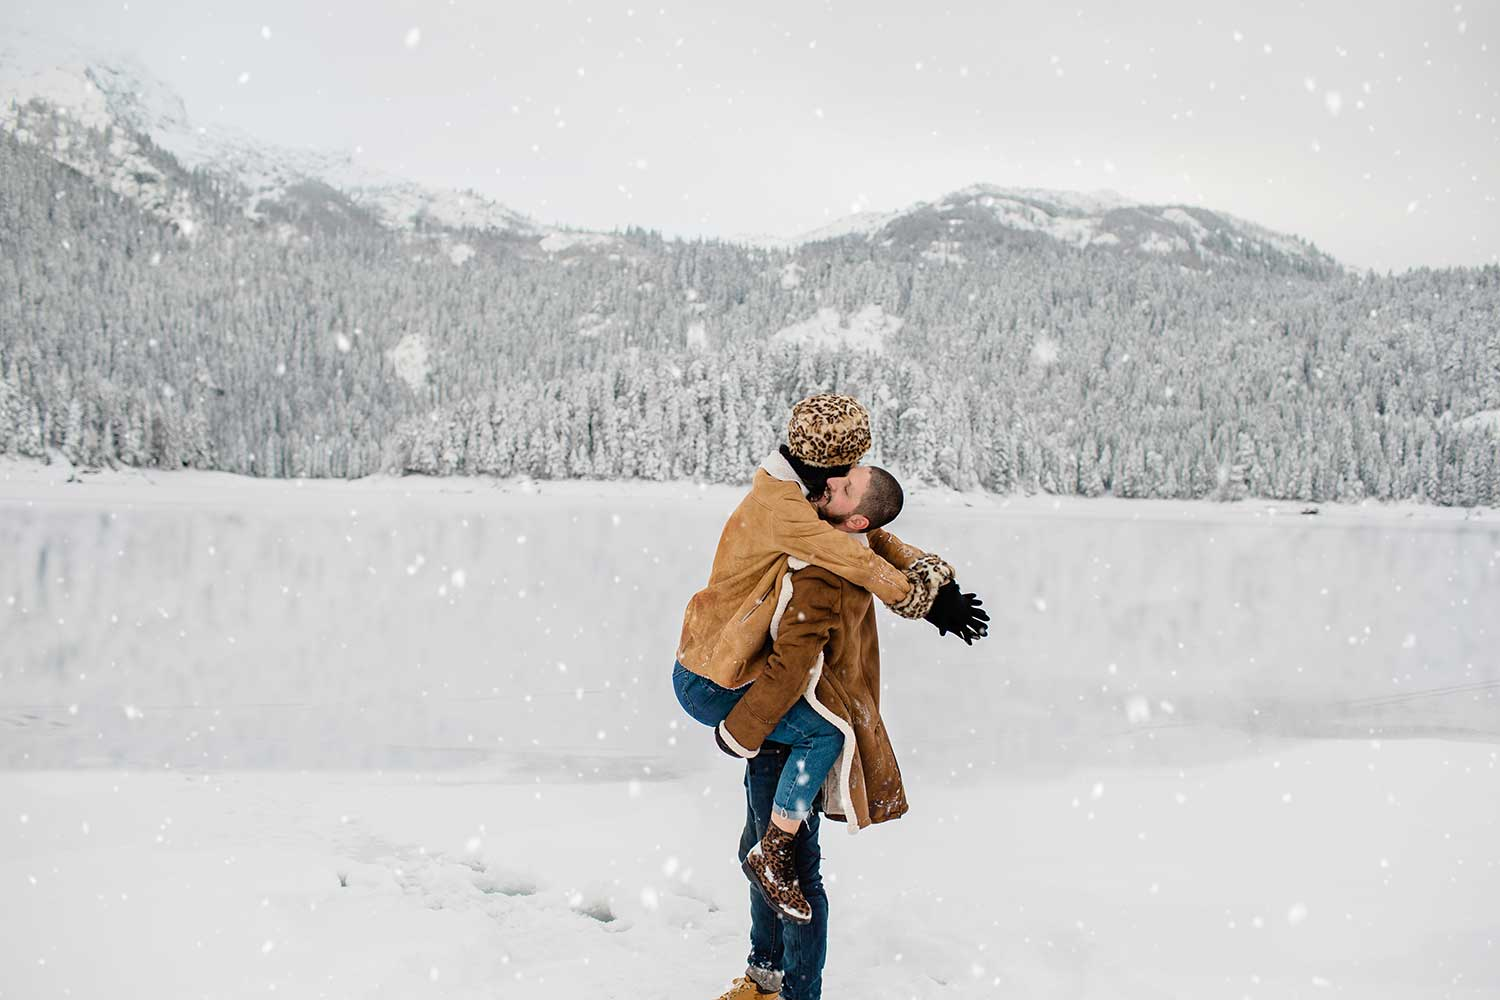 Lovely photoshoot in snow